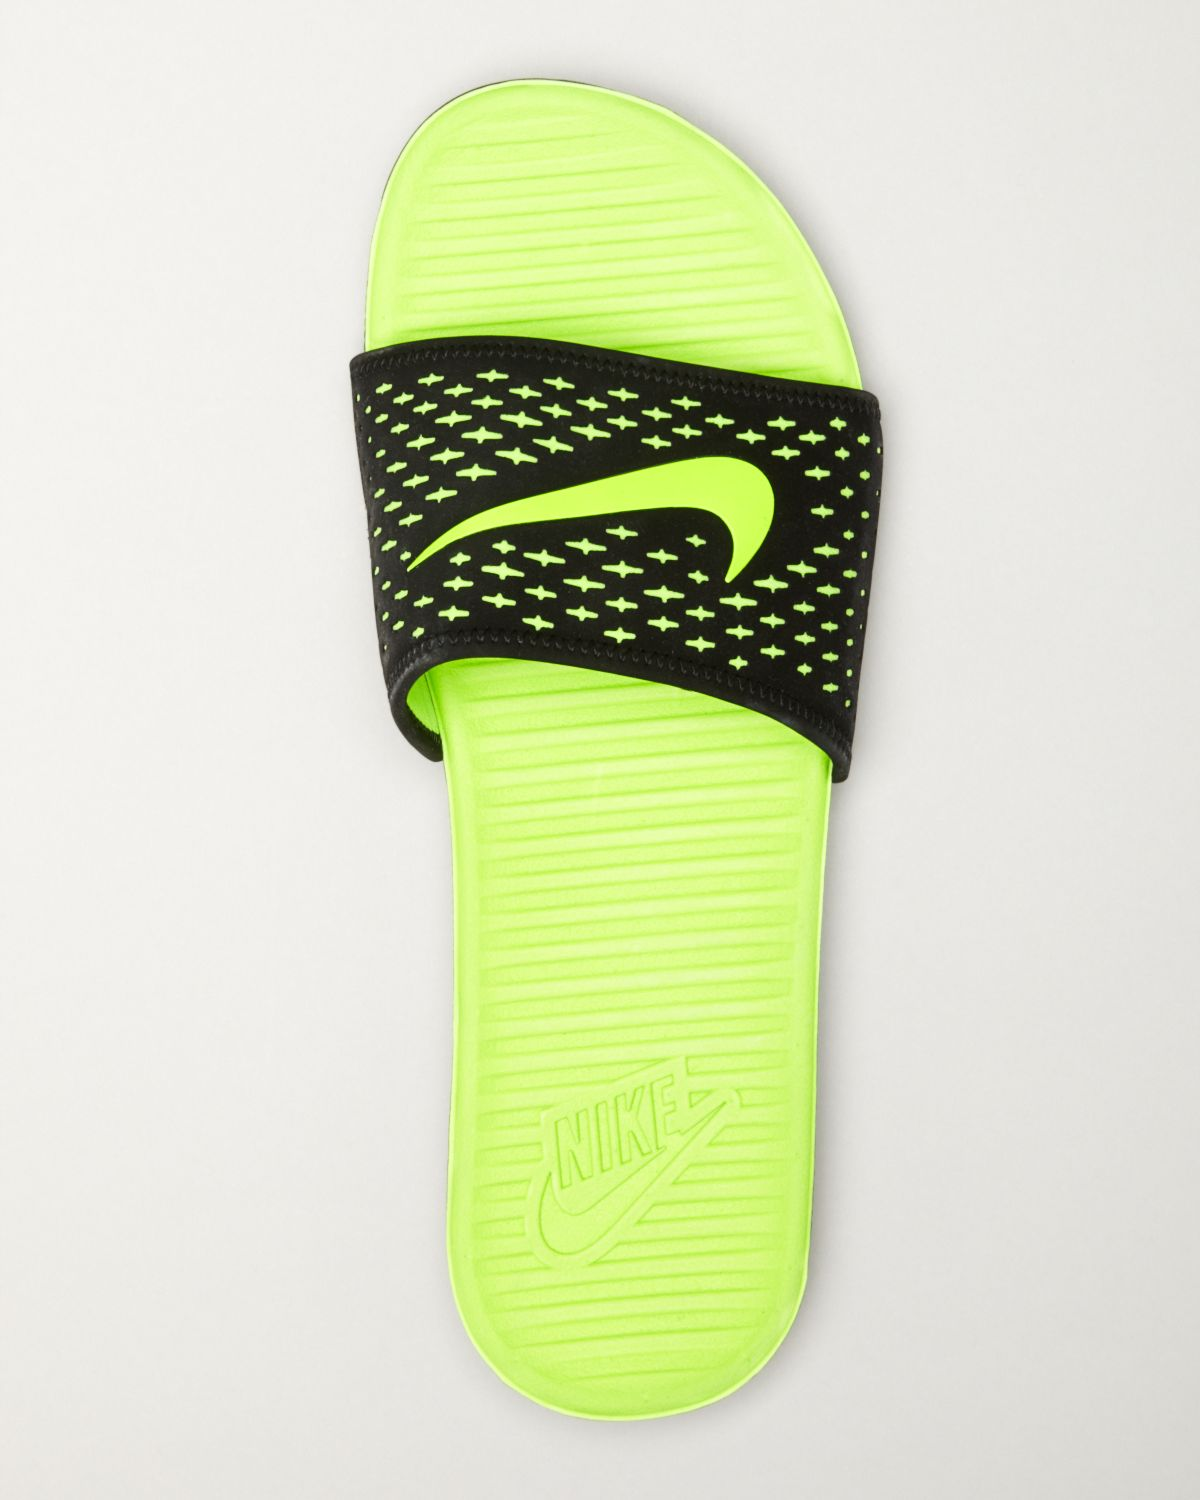 Sandals Neon 5f093 Coupon Code Nike For 47b1b Nmnv0w8